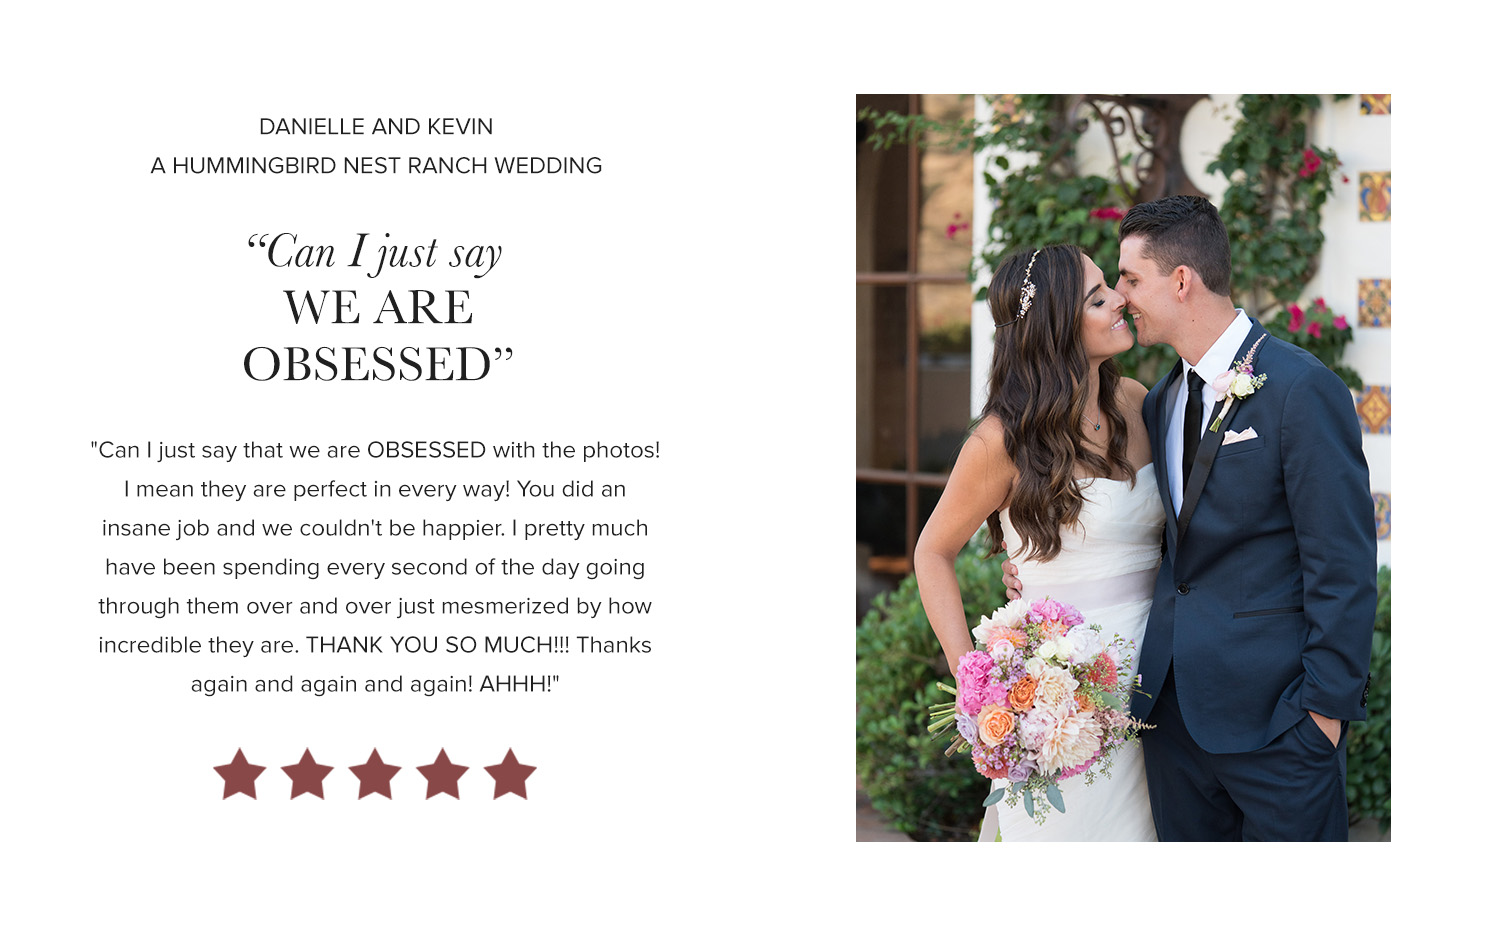 David Manning Photographer Hummingbird Nest Ranch wedding review